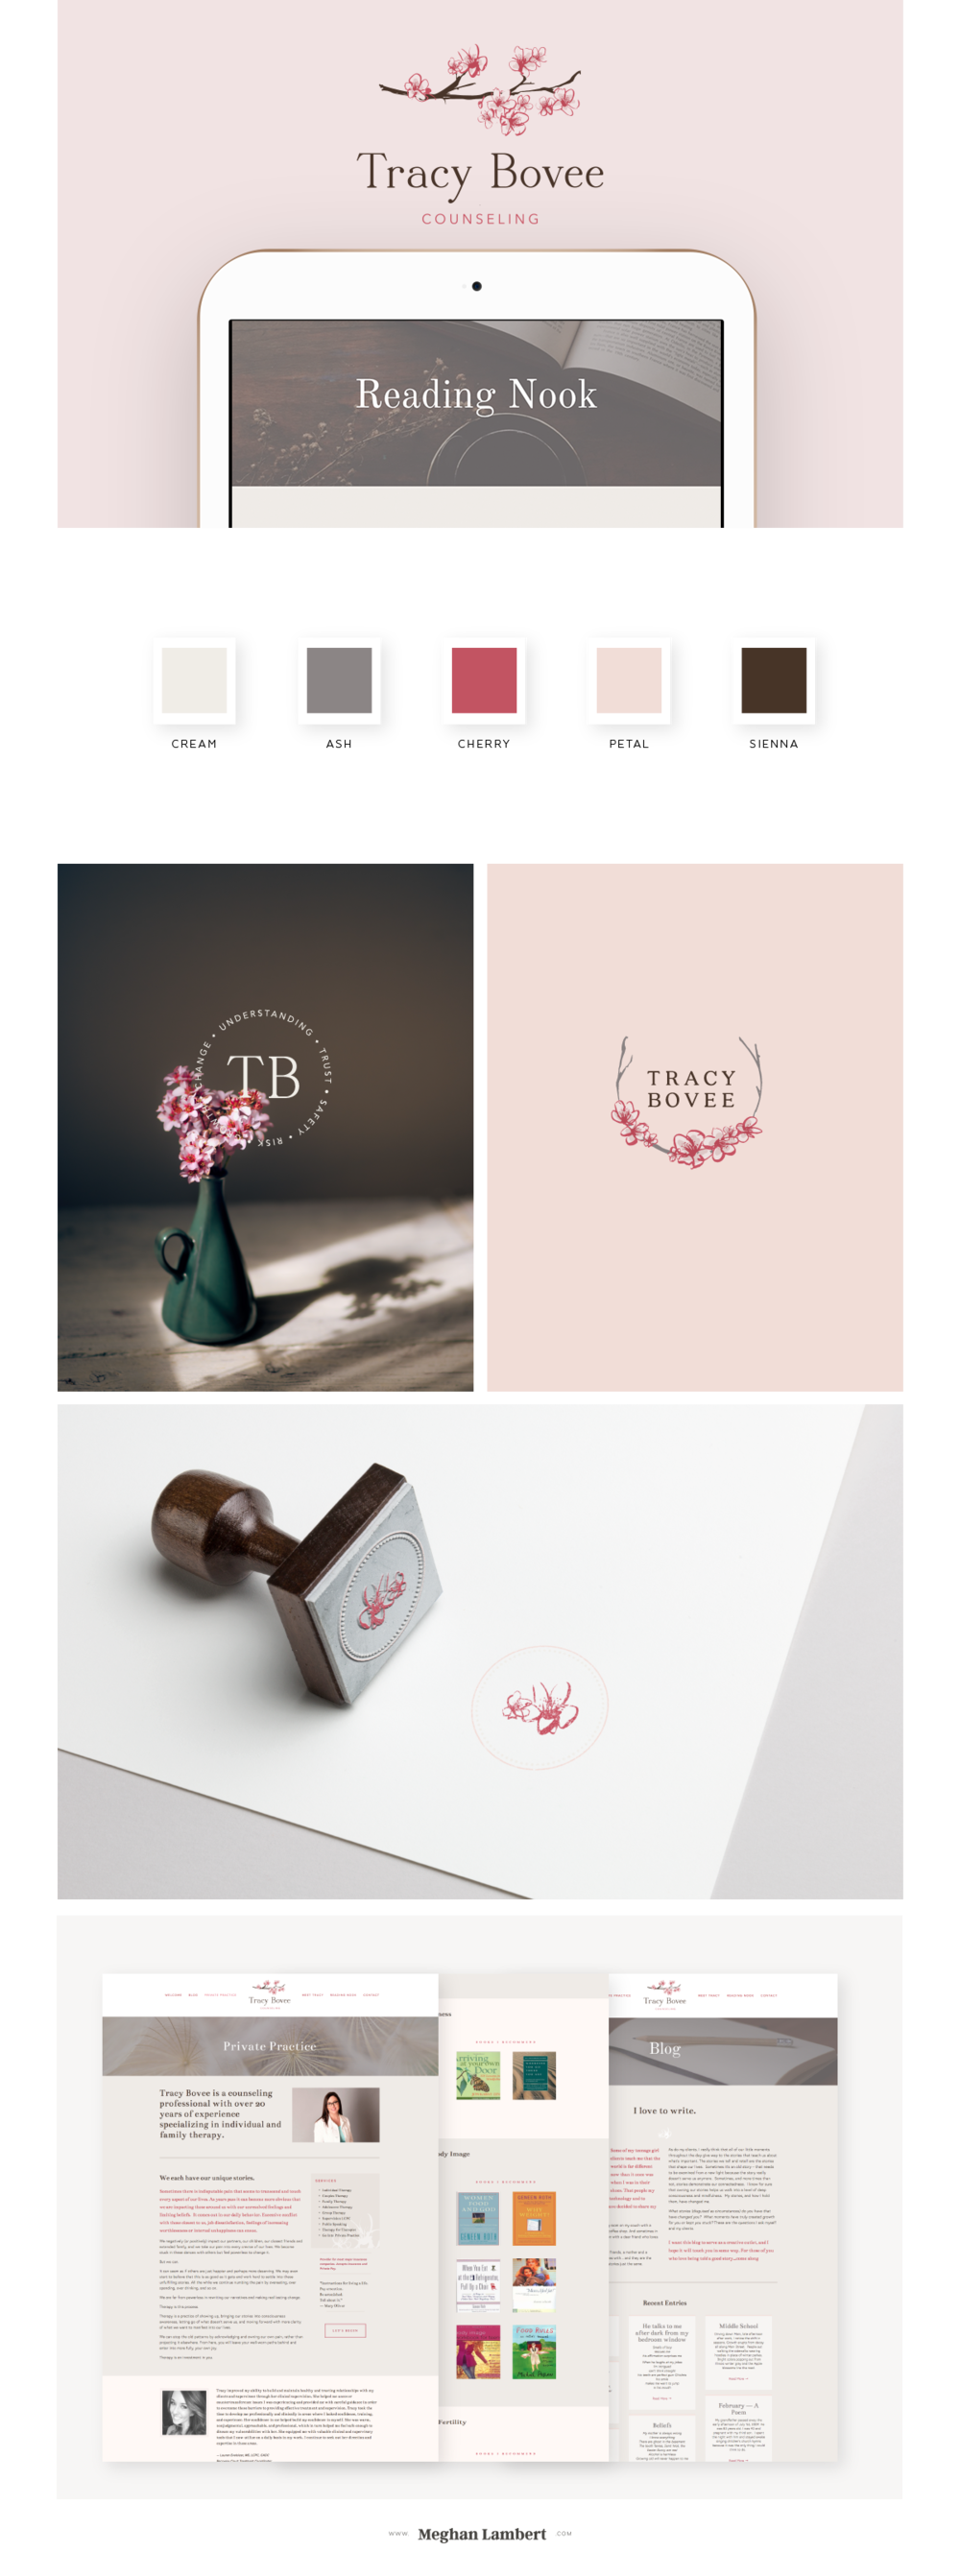 Tracy Bovee Brand Identity and Web Design by Meghan Lambert